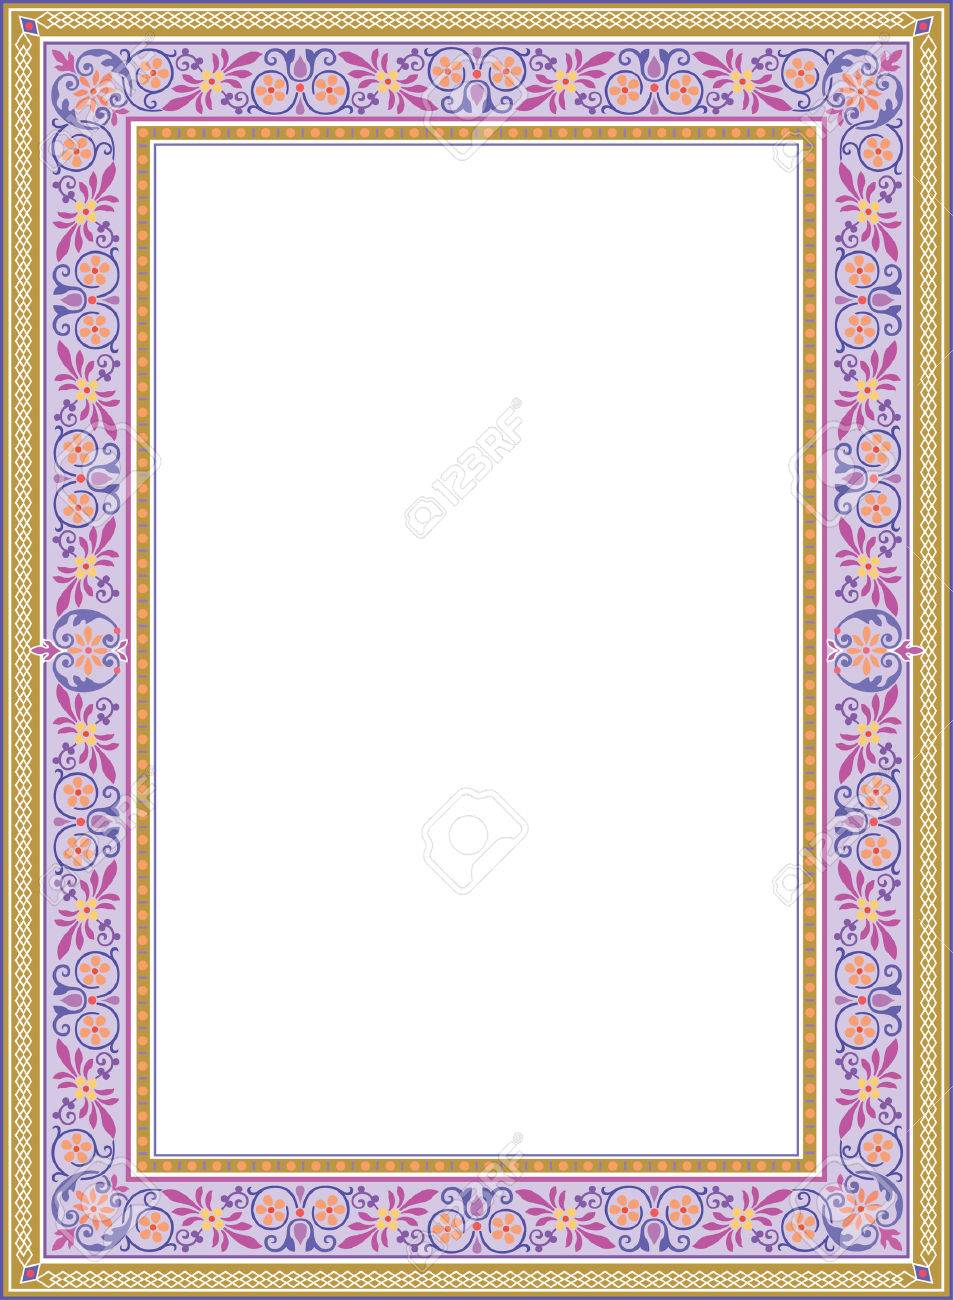 Decorative Western Old Frame Border Royalty Free Cliparts, Vectors ...